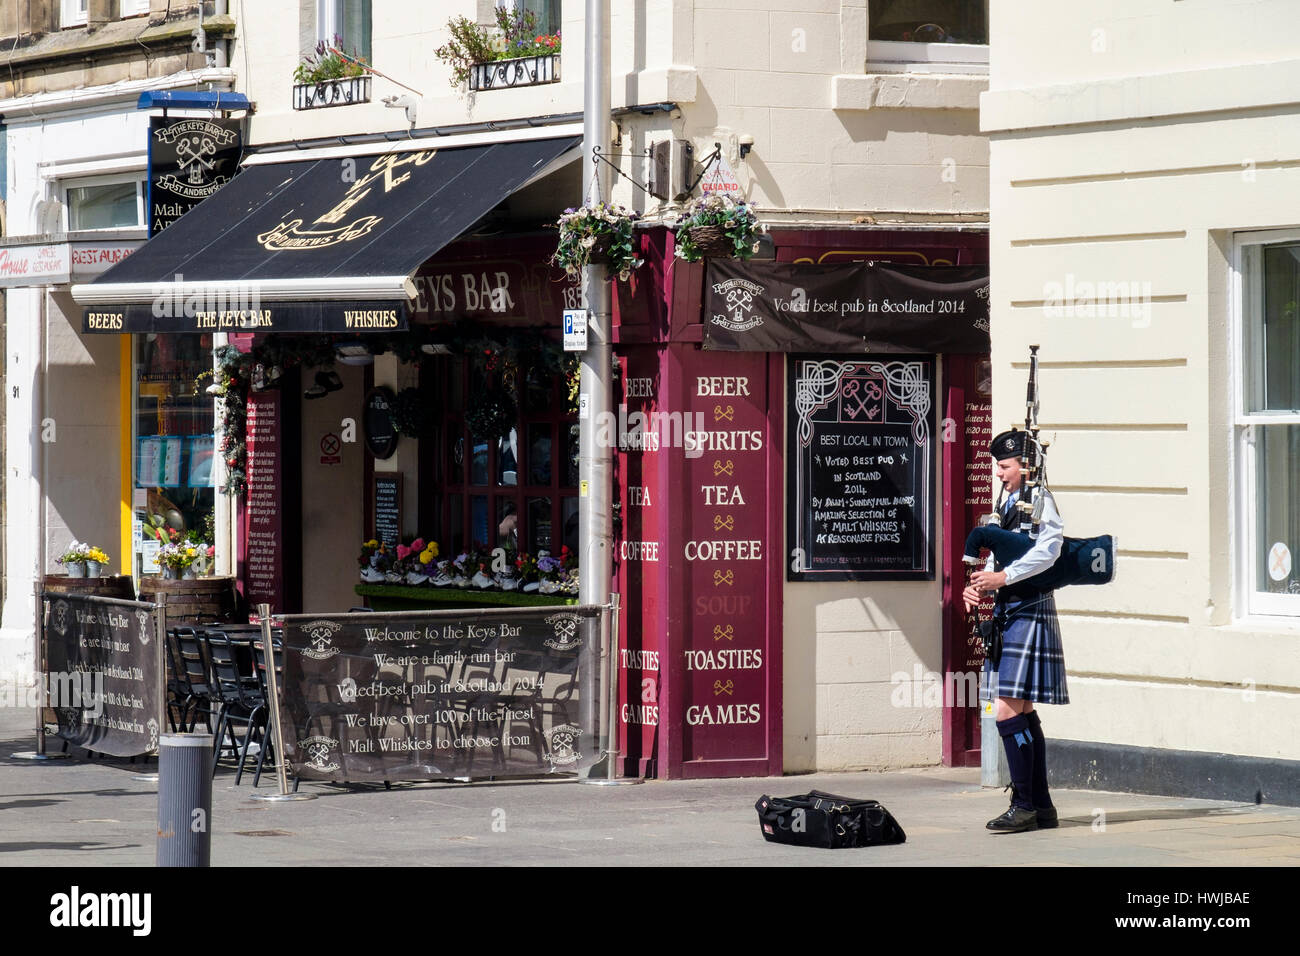 Piper in traditional costume playing bagpipes outside The Keys Bar Inn in town centre. Market Street, Royal Burgh - Stock Image